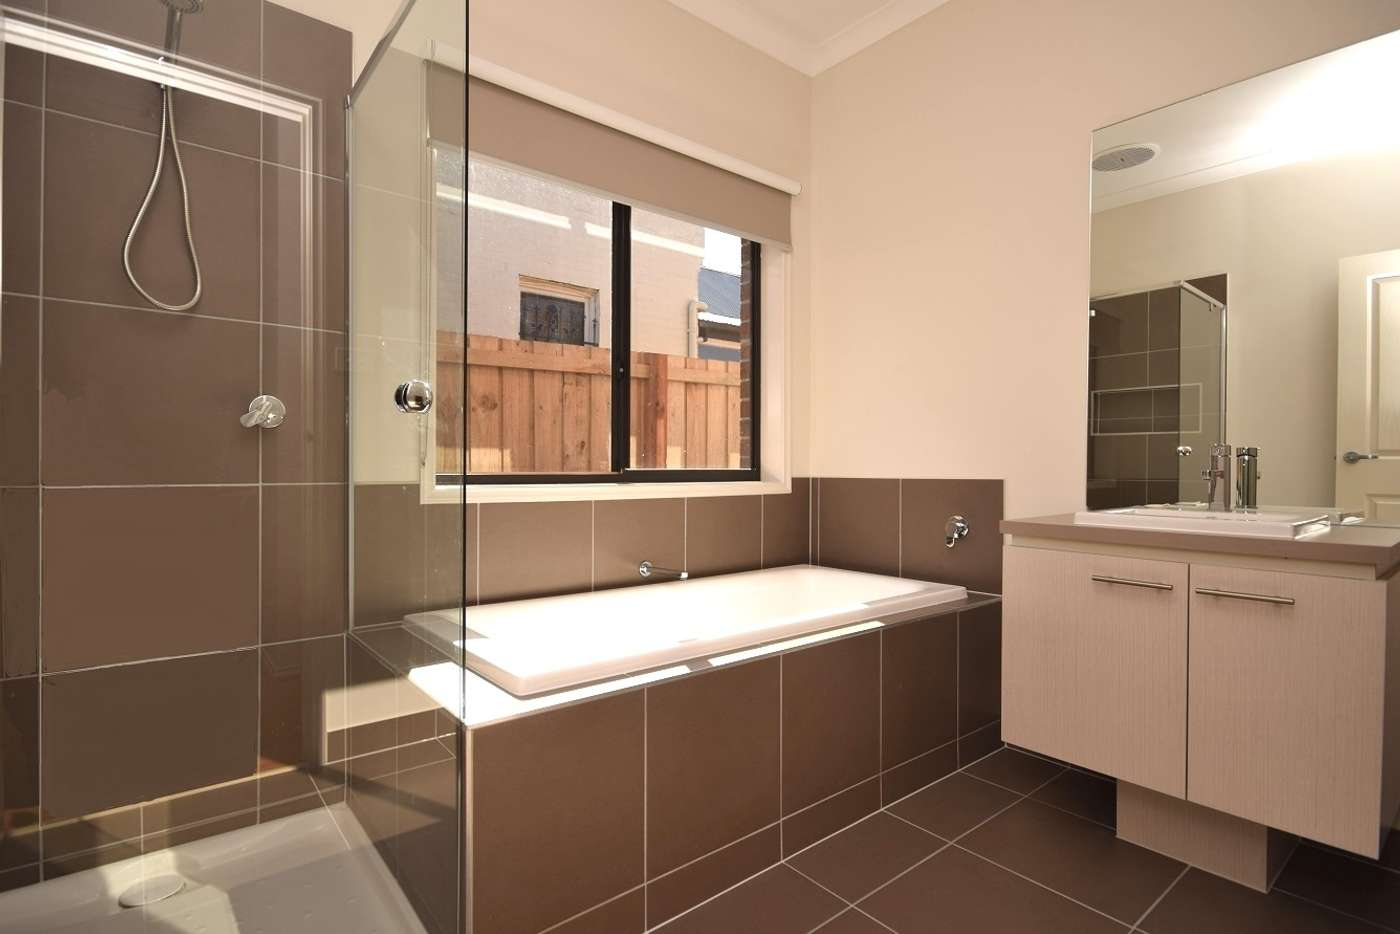 Sixth view of Homely house listing, 10 Huntley Street, Brighton VIC 3186